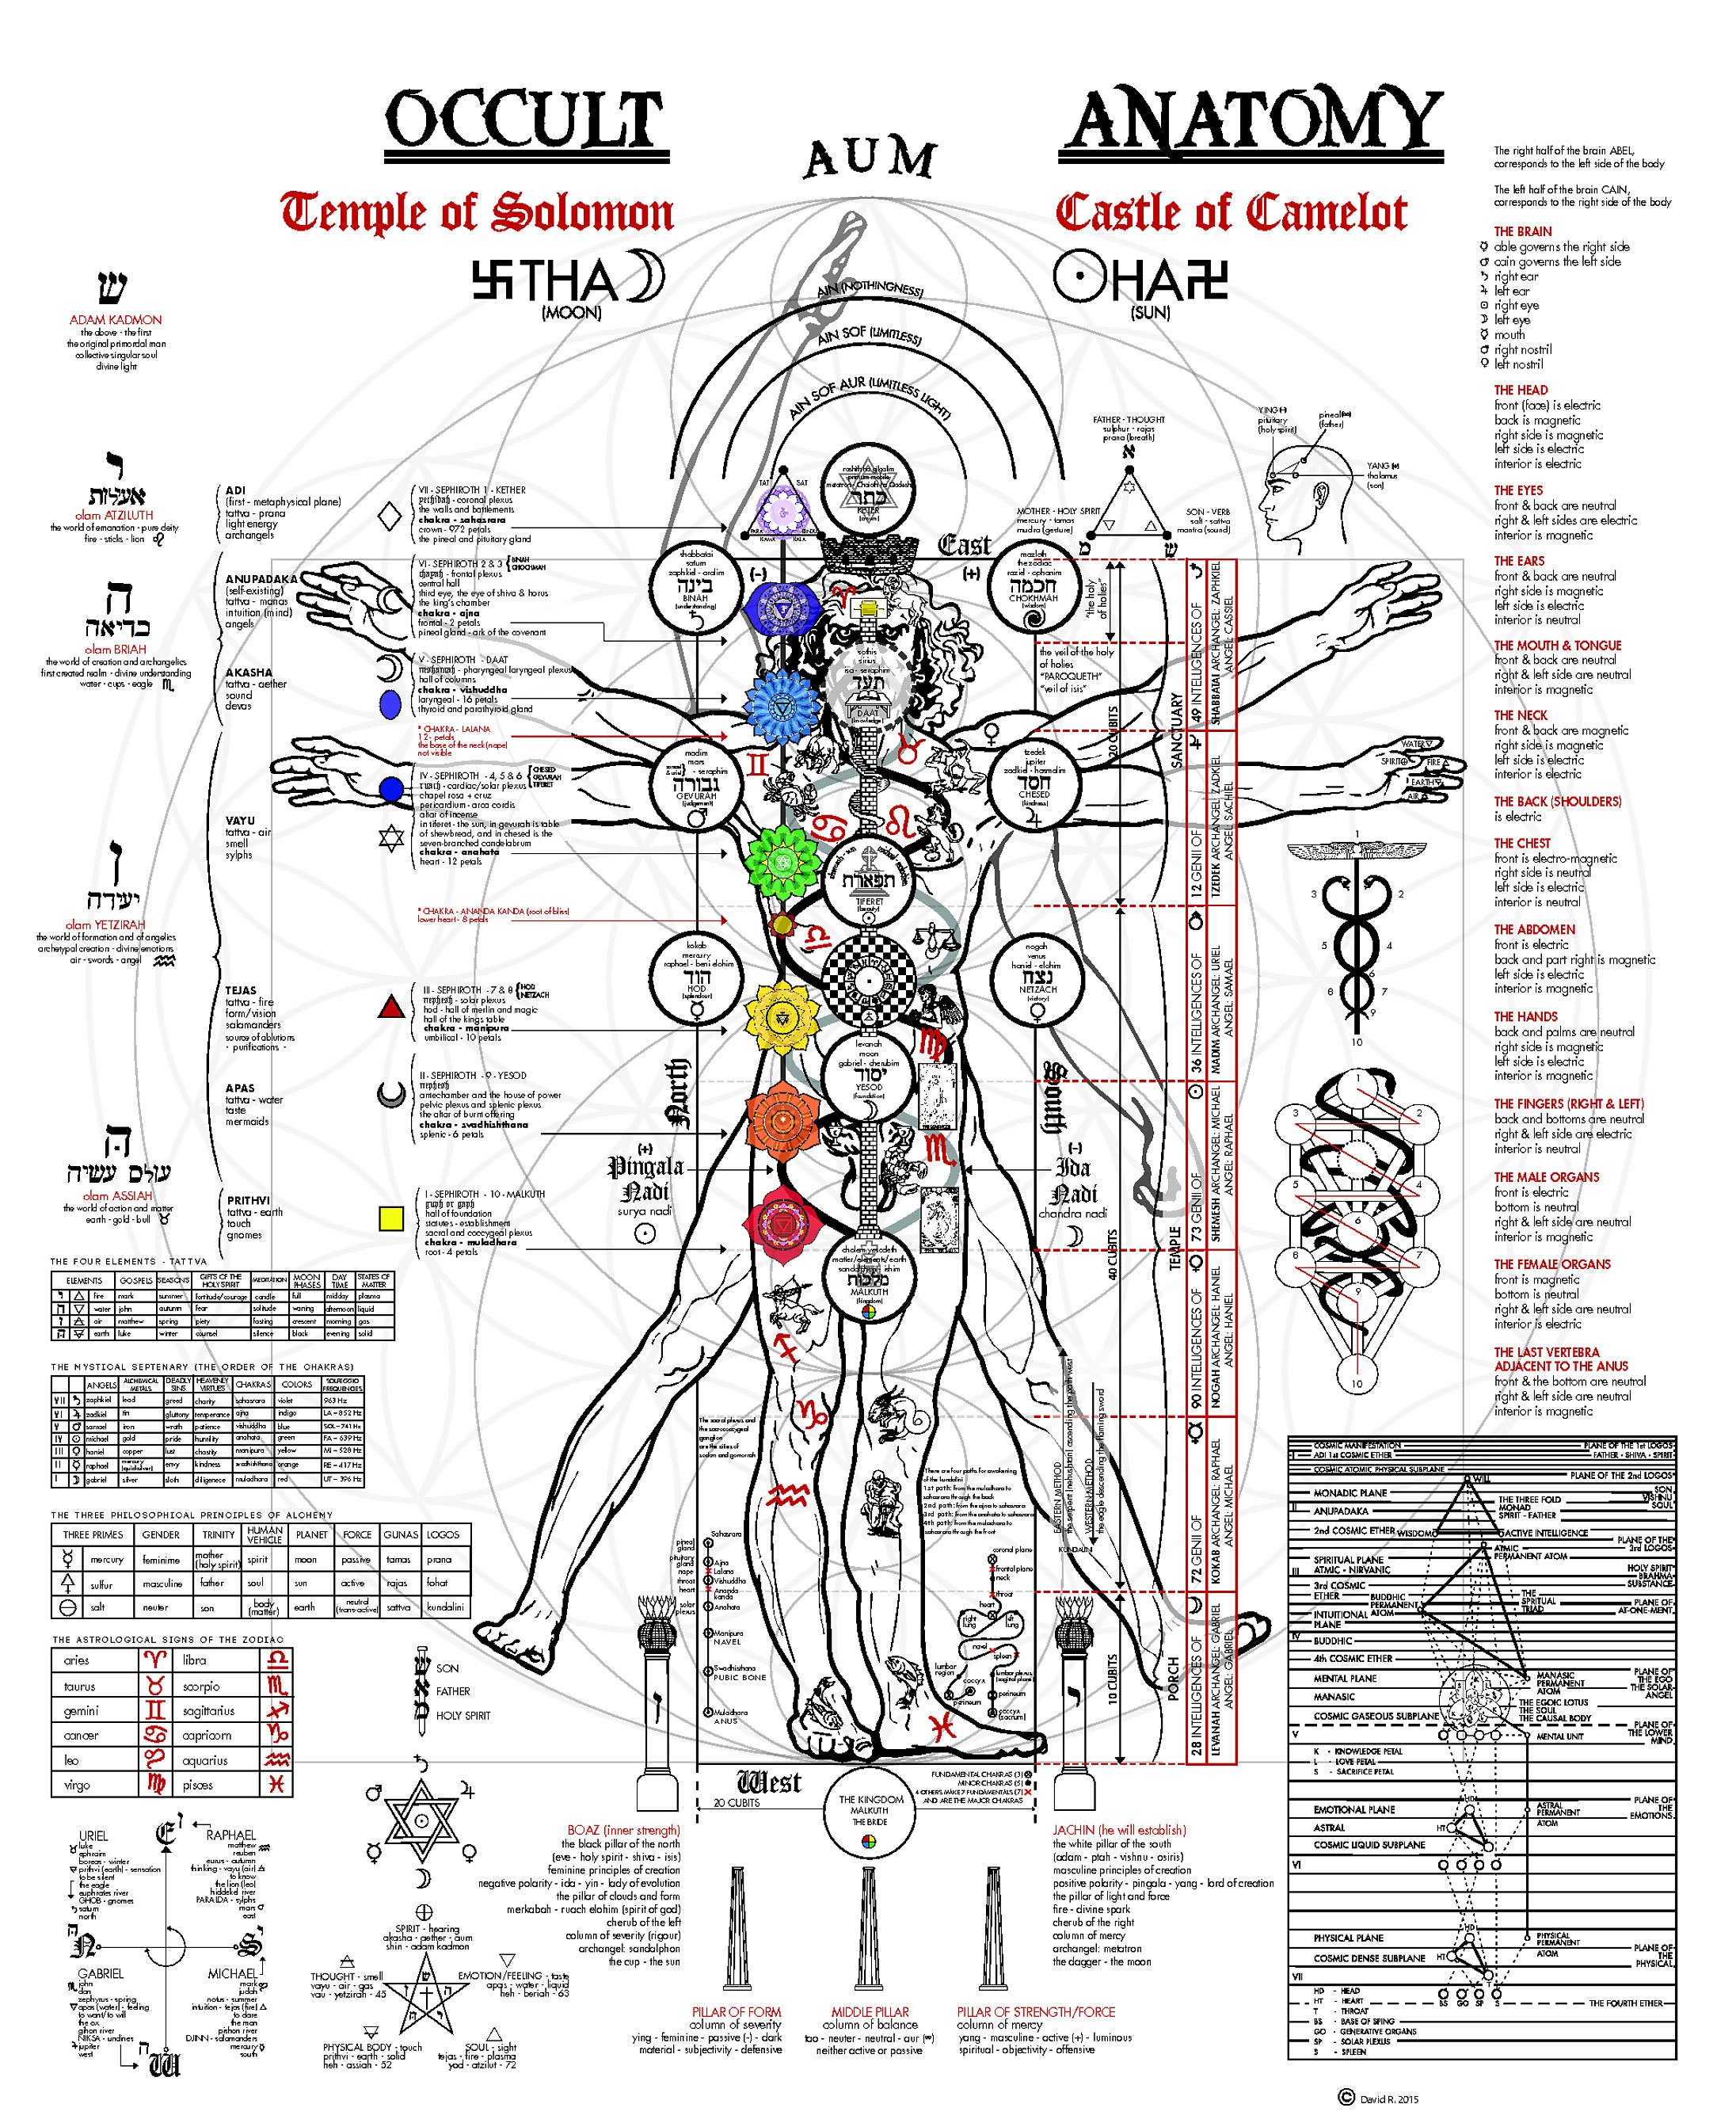 THE OCCULT ANATOMY OF MAN | Reality Files